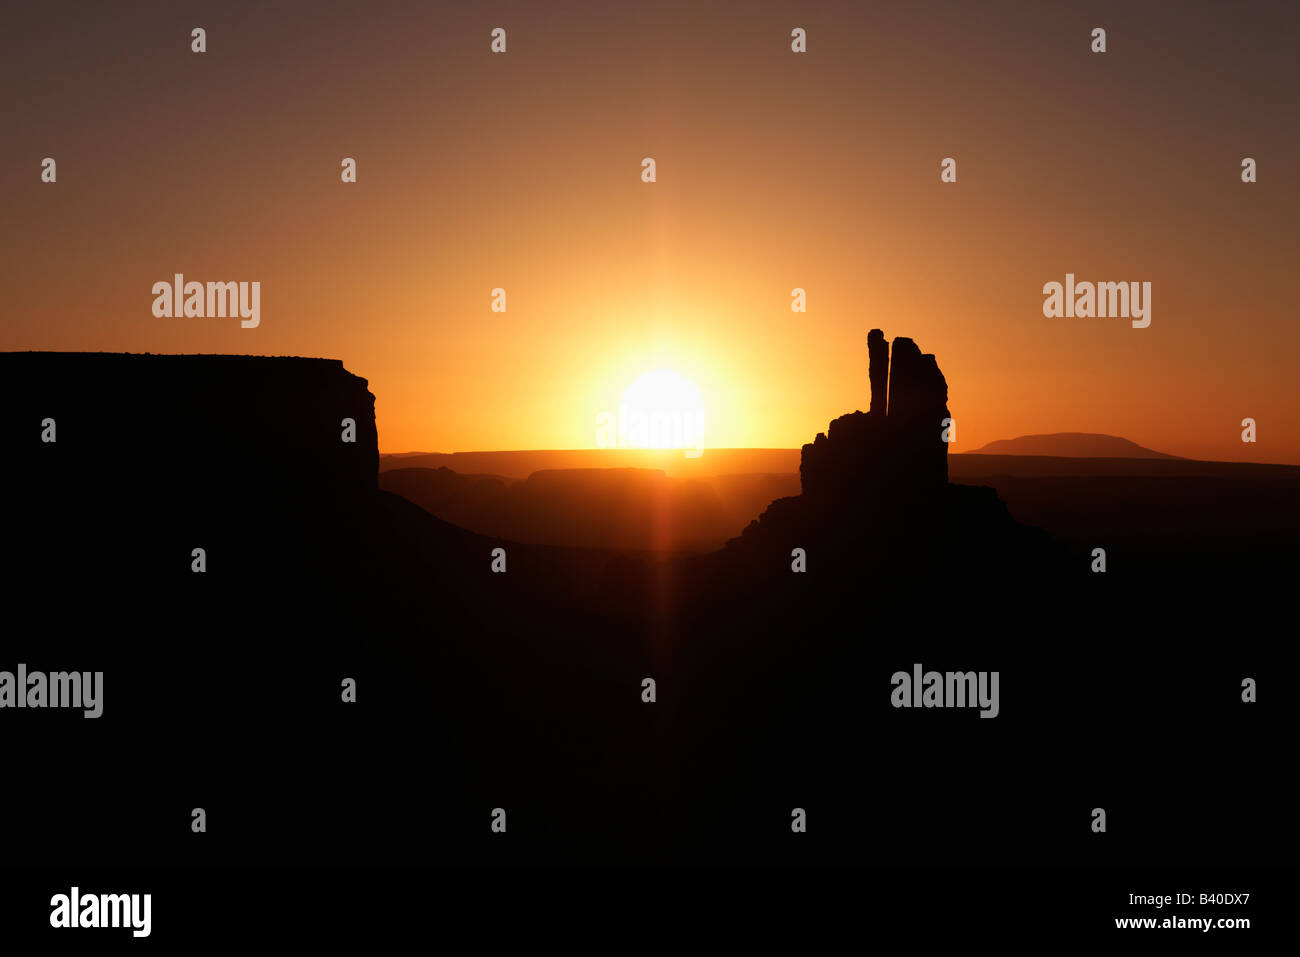 Scenic sunset landscape of mesas in Monument Valley near the border of Arizona and Utah United States Stock Photo